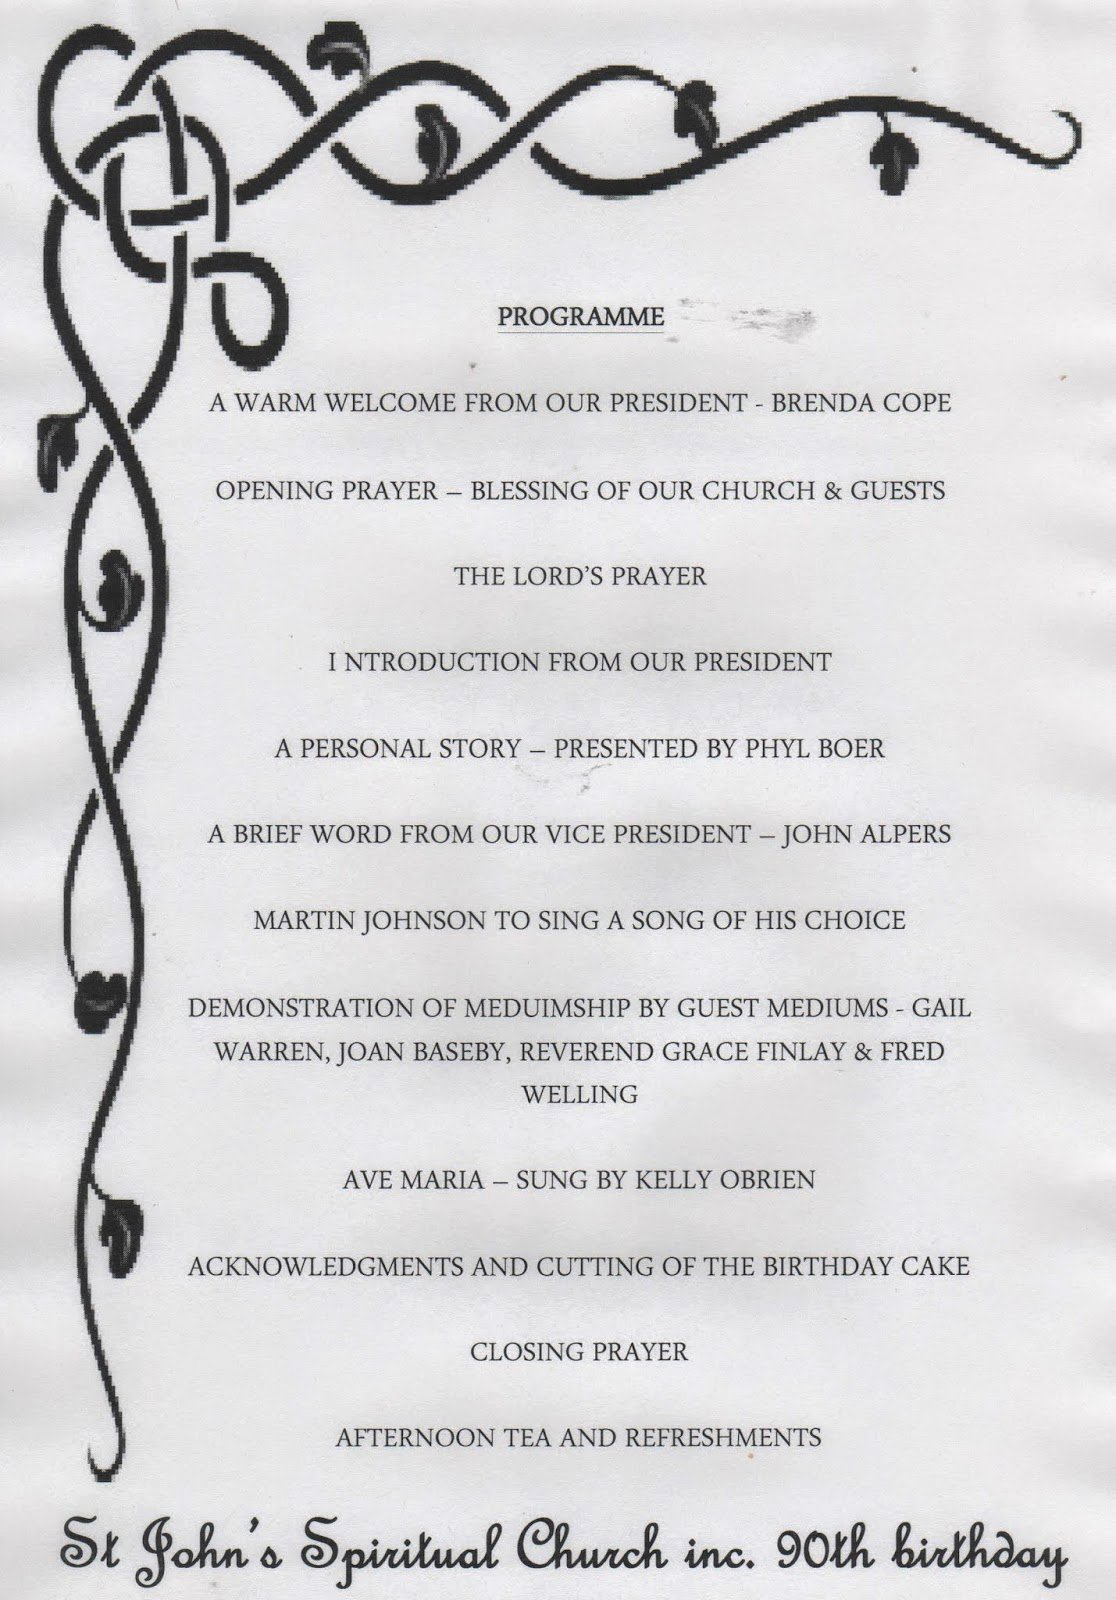 Birthday Party Program Outline Beautiful St John S Spiritual Church Inc 90th Birthday Activities & Program